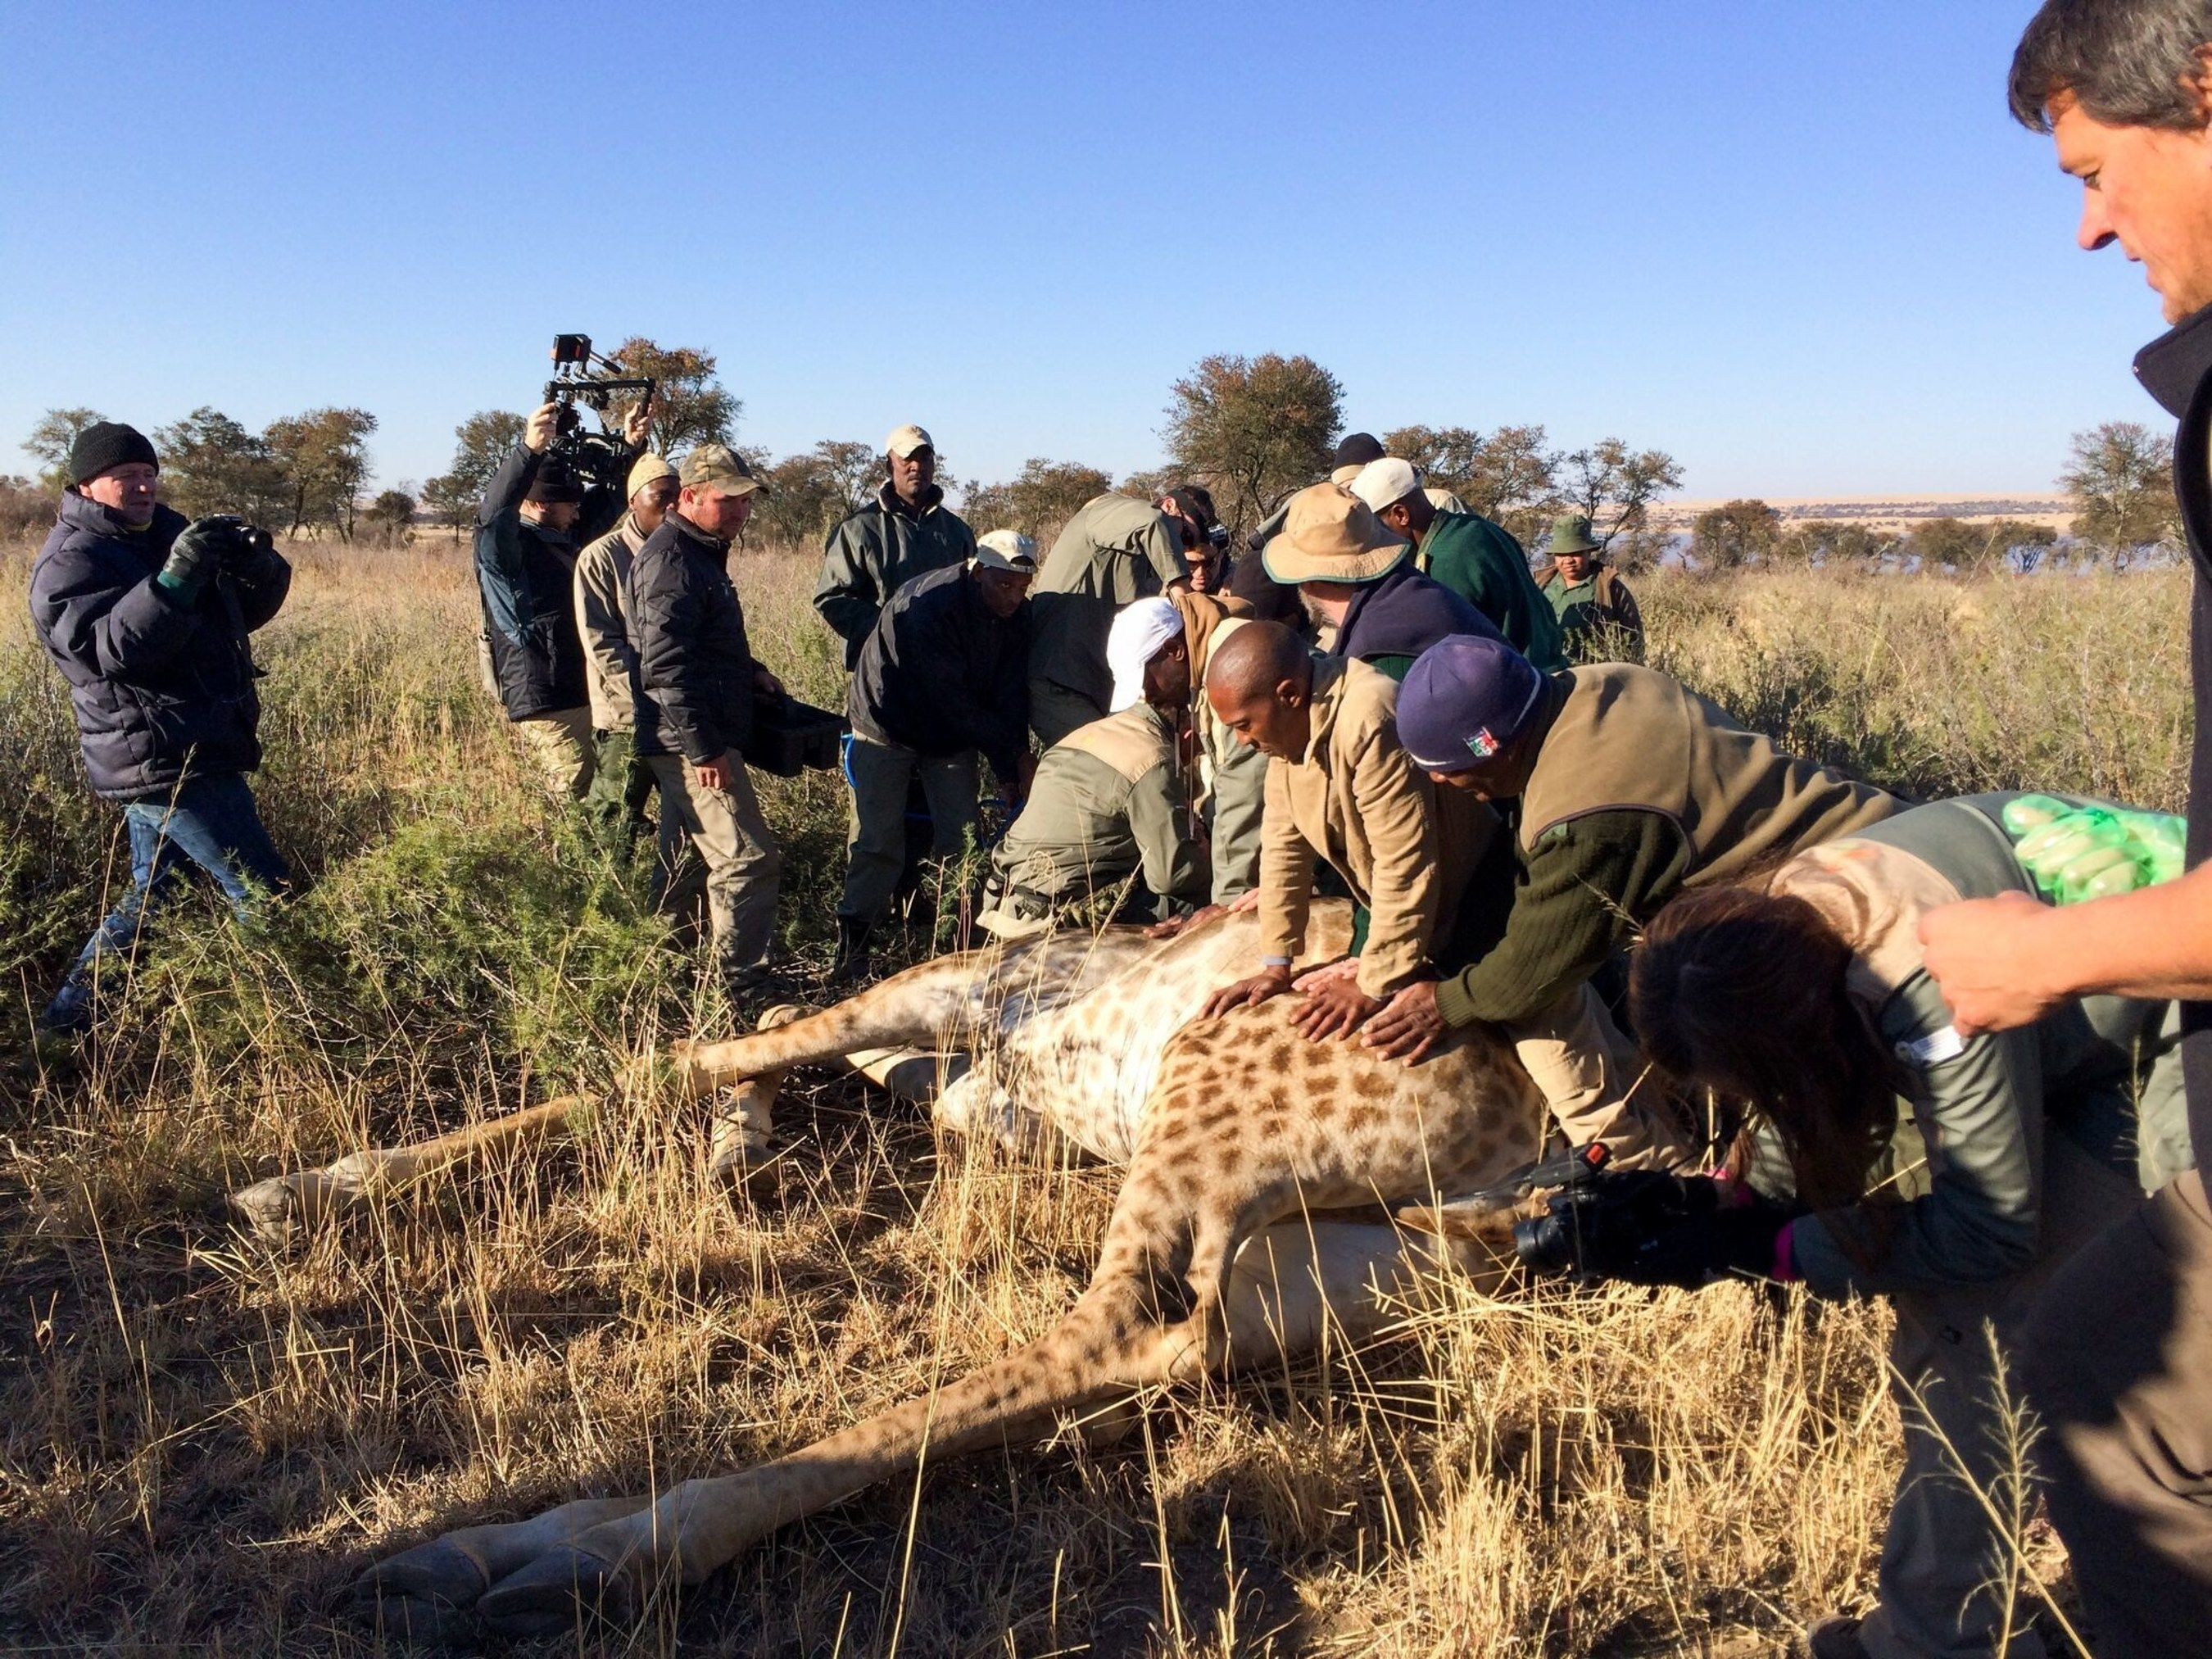 South Africa University of the Free State lecturer in wildlife management Dr. Francois Deacon collars a wild giraffe with a GPS tracking device. Collars and ear tags help Deacon silently follow wild giraffe in Africa to learn of habits that may be leading to their decline.